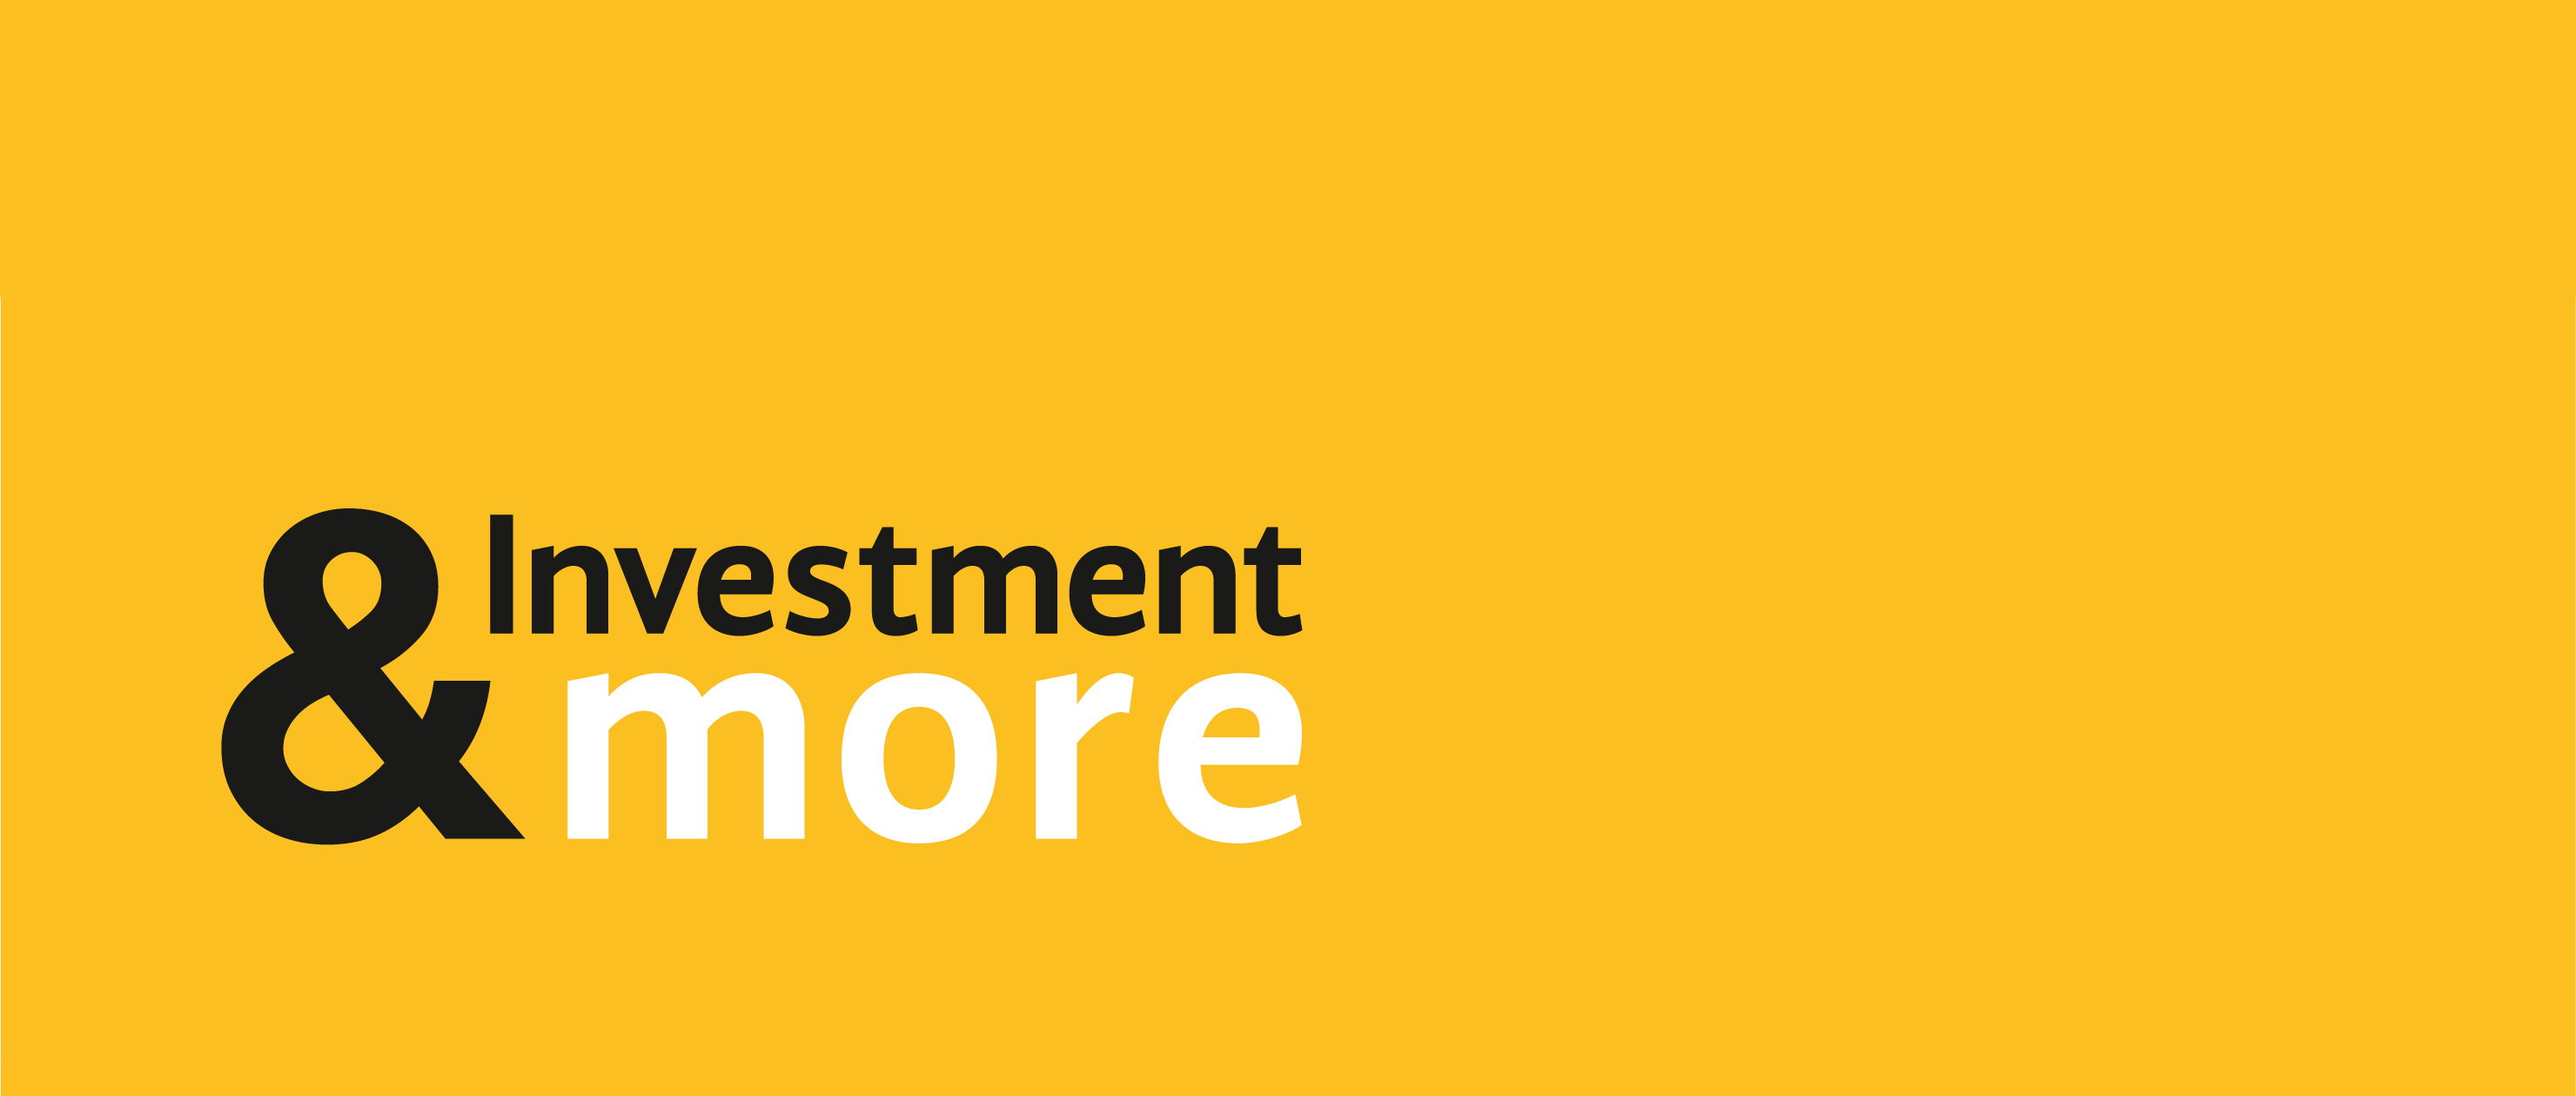 Investment&More